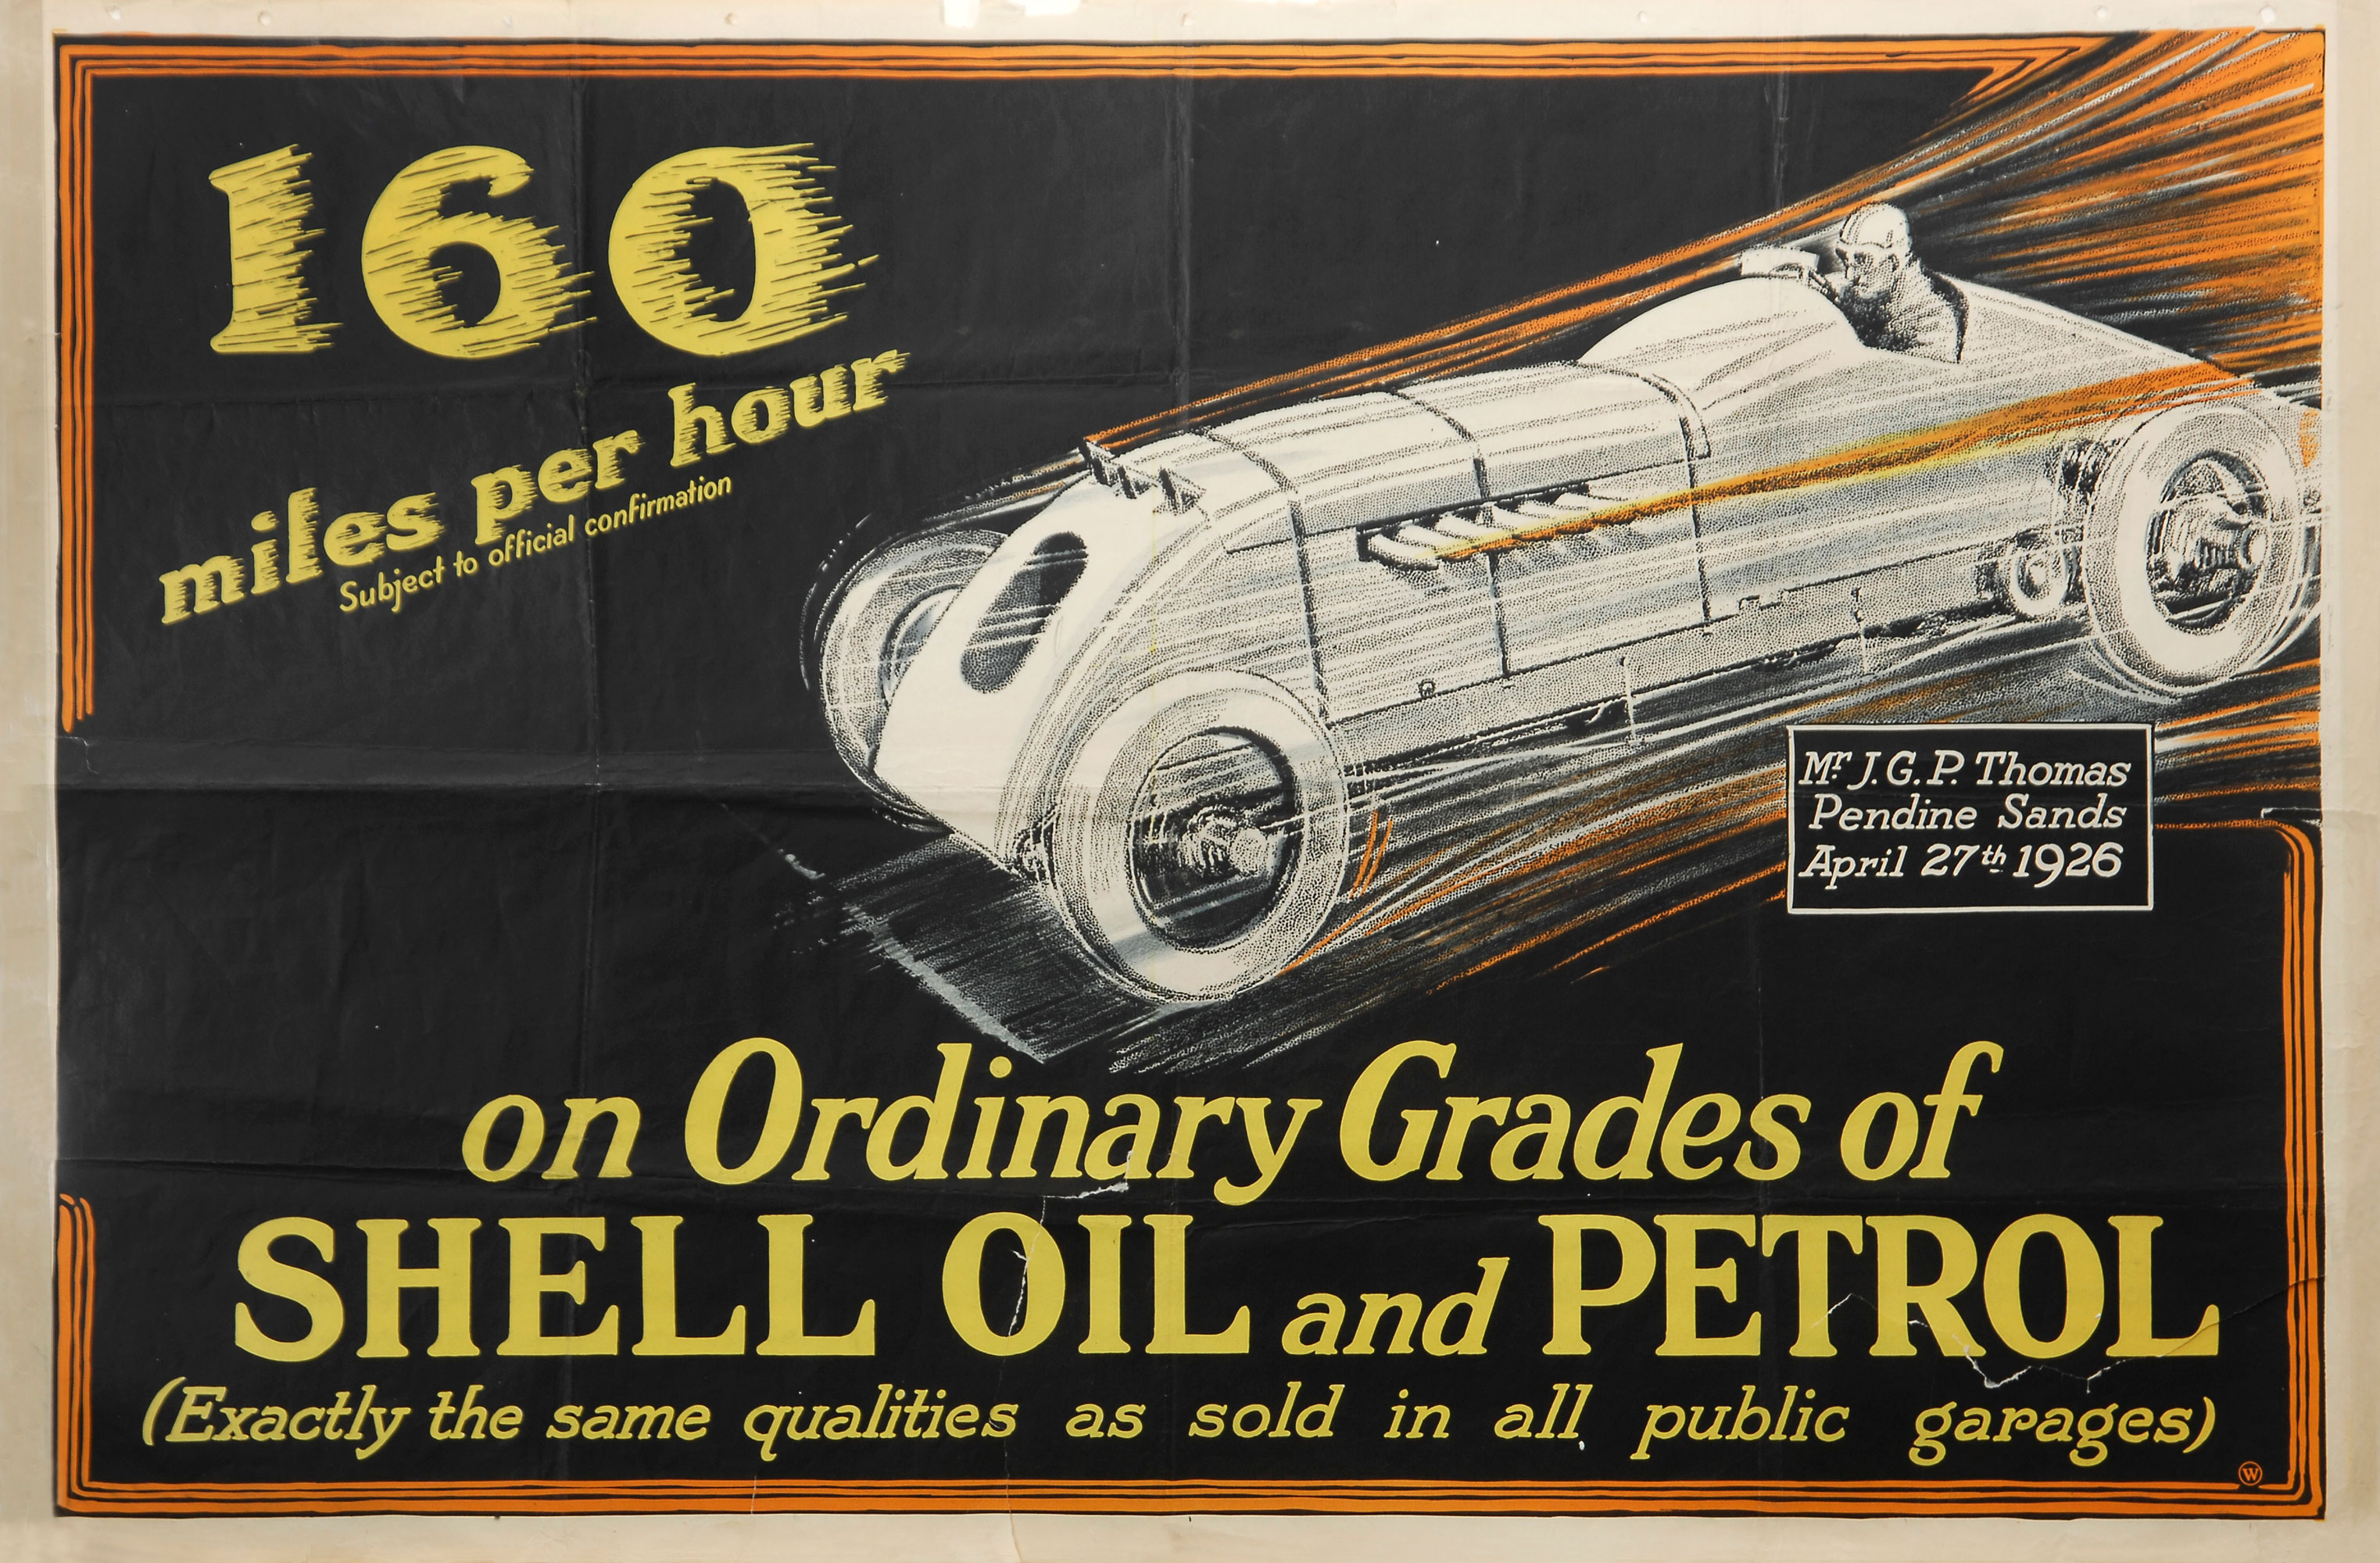 "Shell poster number 124, 160 Miles Per Hour – J.G.P. Thomas, Shell Studio (1926). Drawing of JG Parry Thomas in his vehicle, attempting to break the World Land Speed Record. Text reads; ""160 miles an hour (subject to confirmation) on ordinary grades of Shell Oil and Petrol (Exactly the same qualities as sold in all public garages). Text box reads; ""Mr J.G.P. Thomas, Pendine Sands, April 27th 1926""."